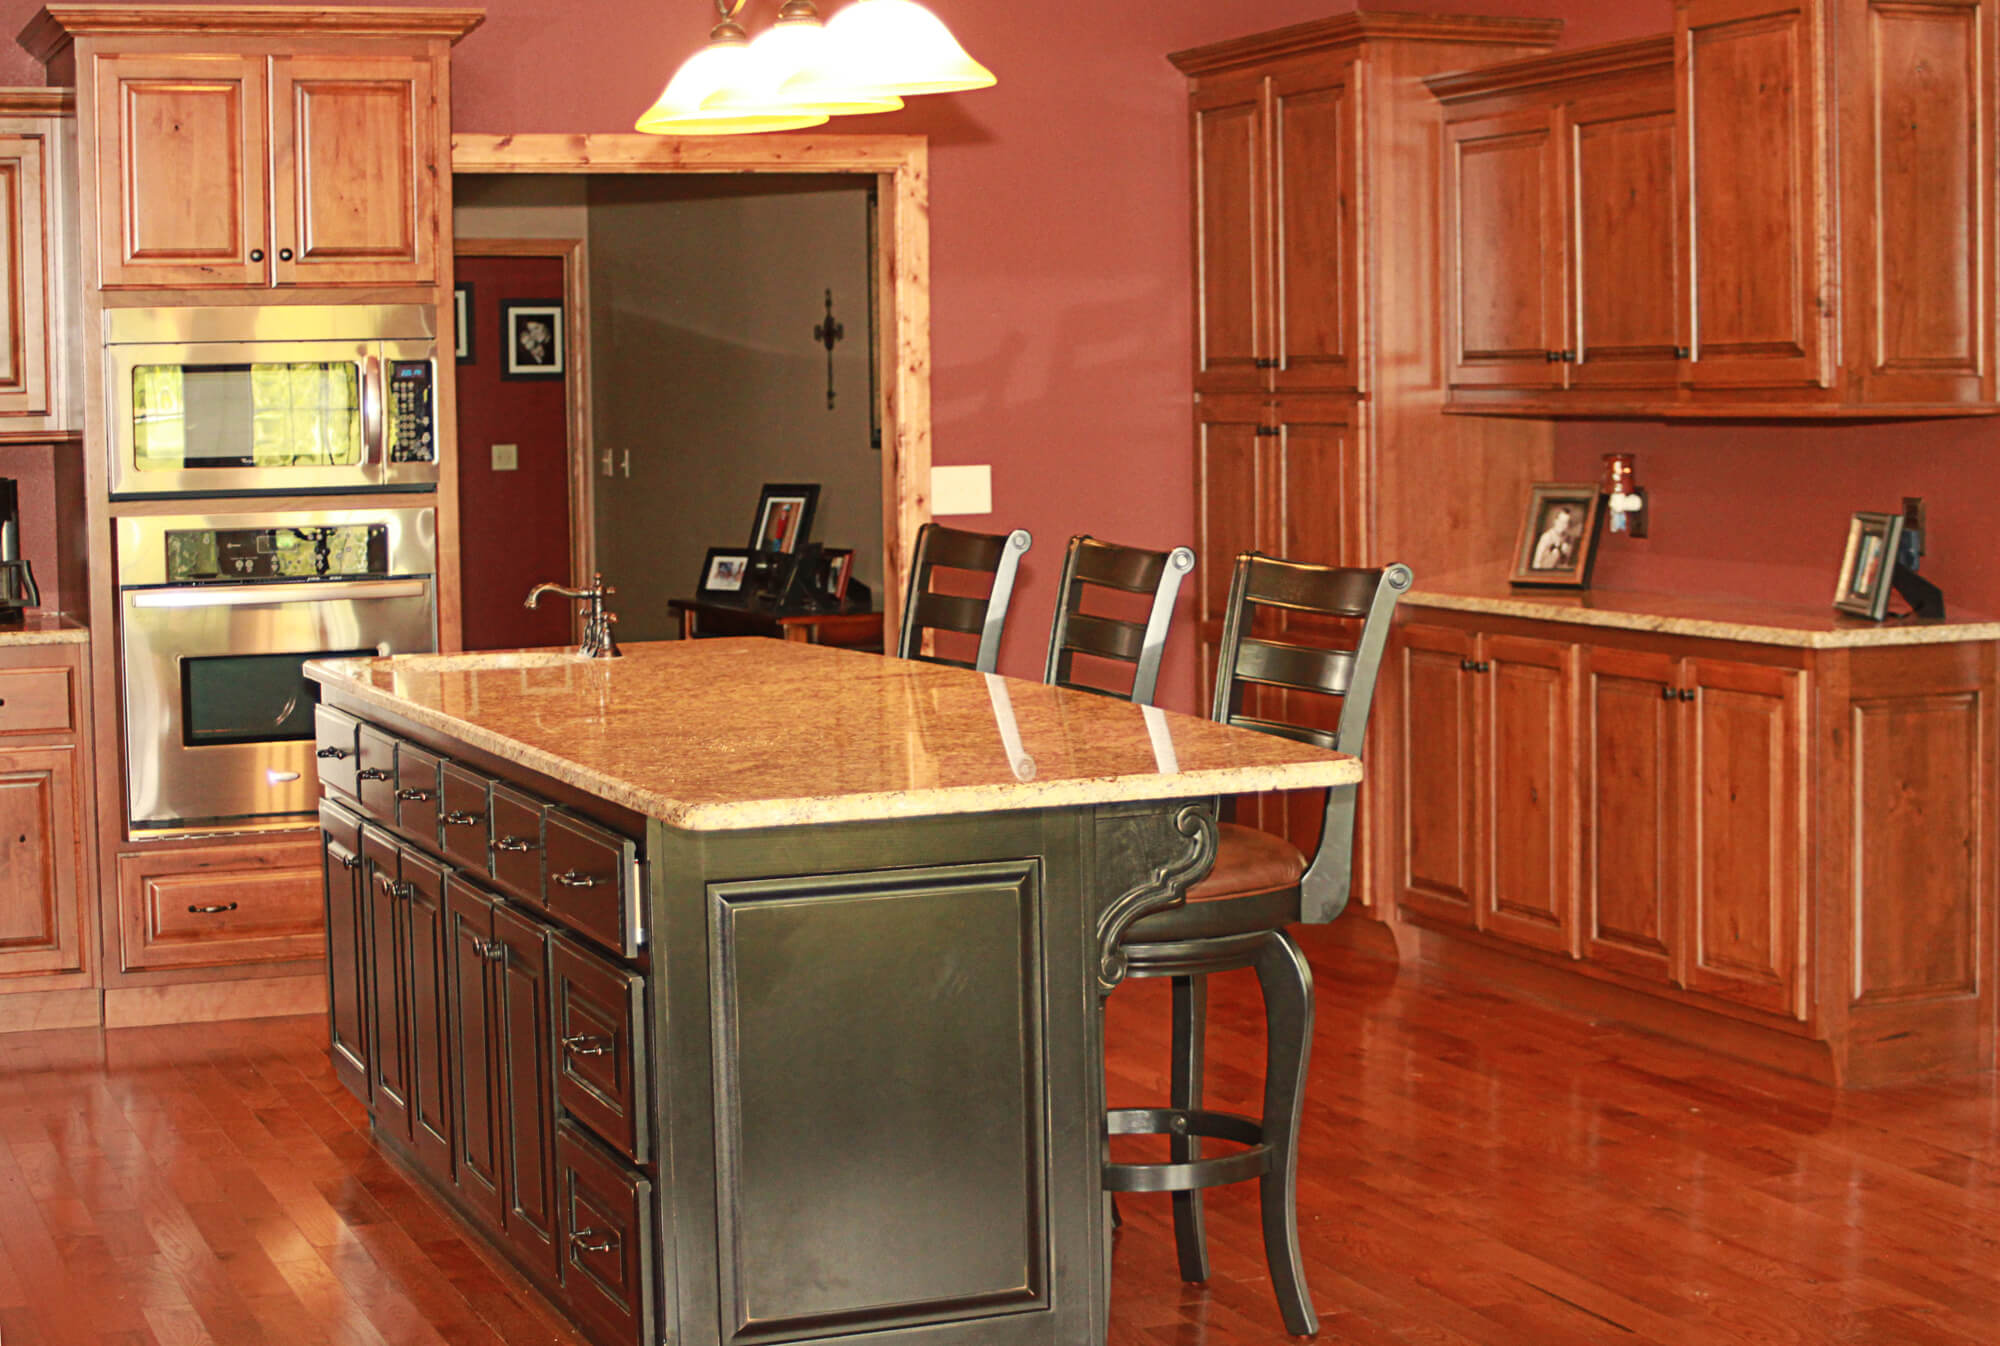 rustic cherry kitchen cabinets - Cherry Kitchen Cabinets